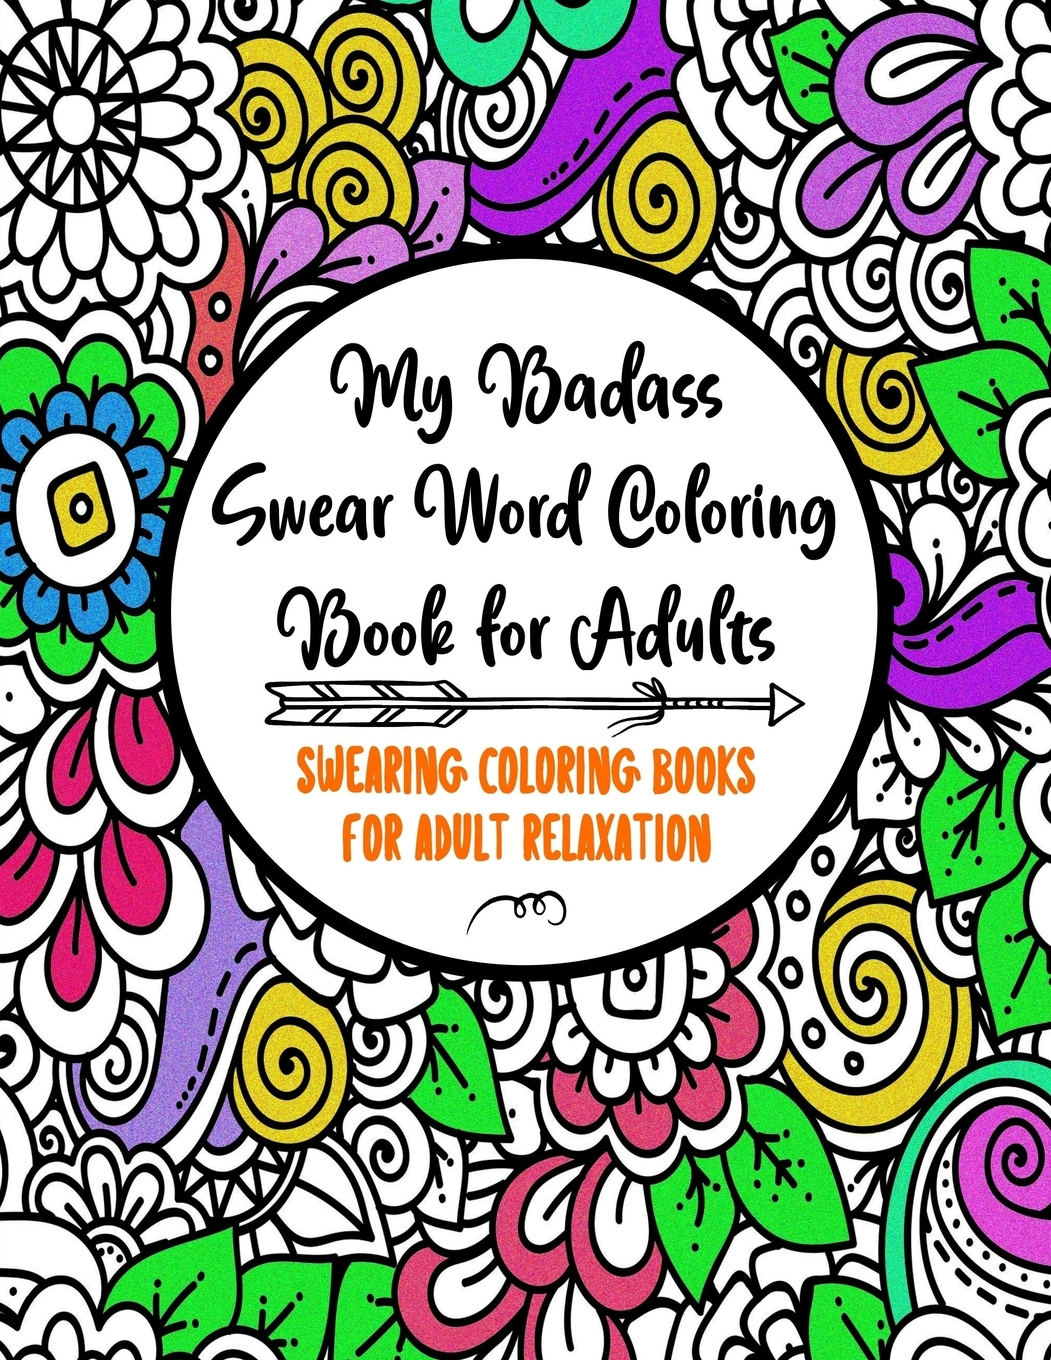 Badass Coloring Pages : badass, coloring, pages, Coloring, Books, Adults:, Badass, Swear, Adults, Swearing, Adult, Relaxation, Funny, Gifts